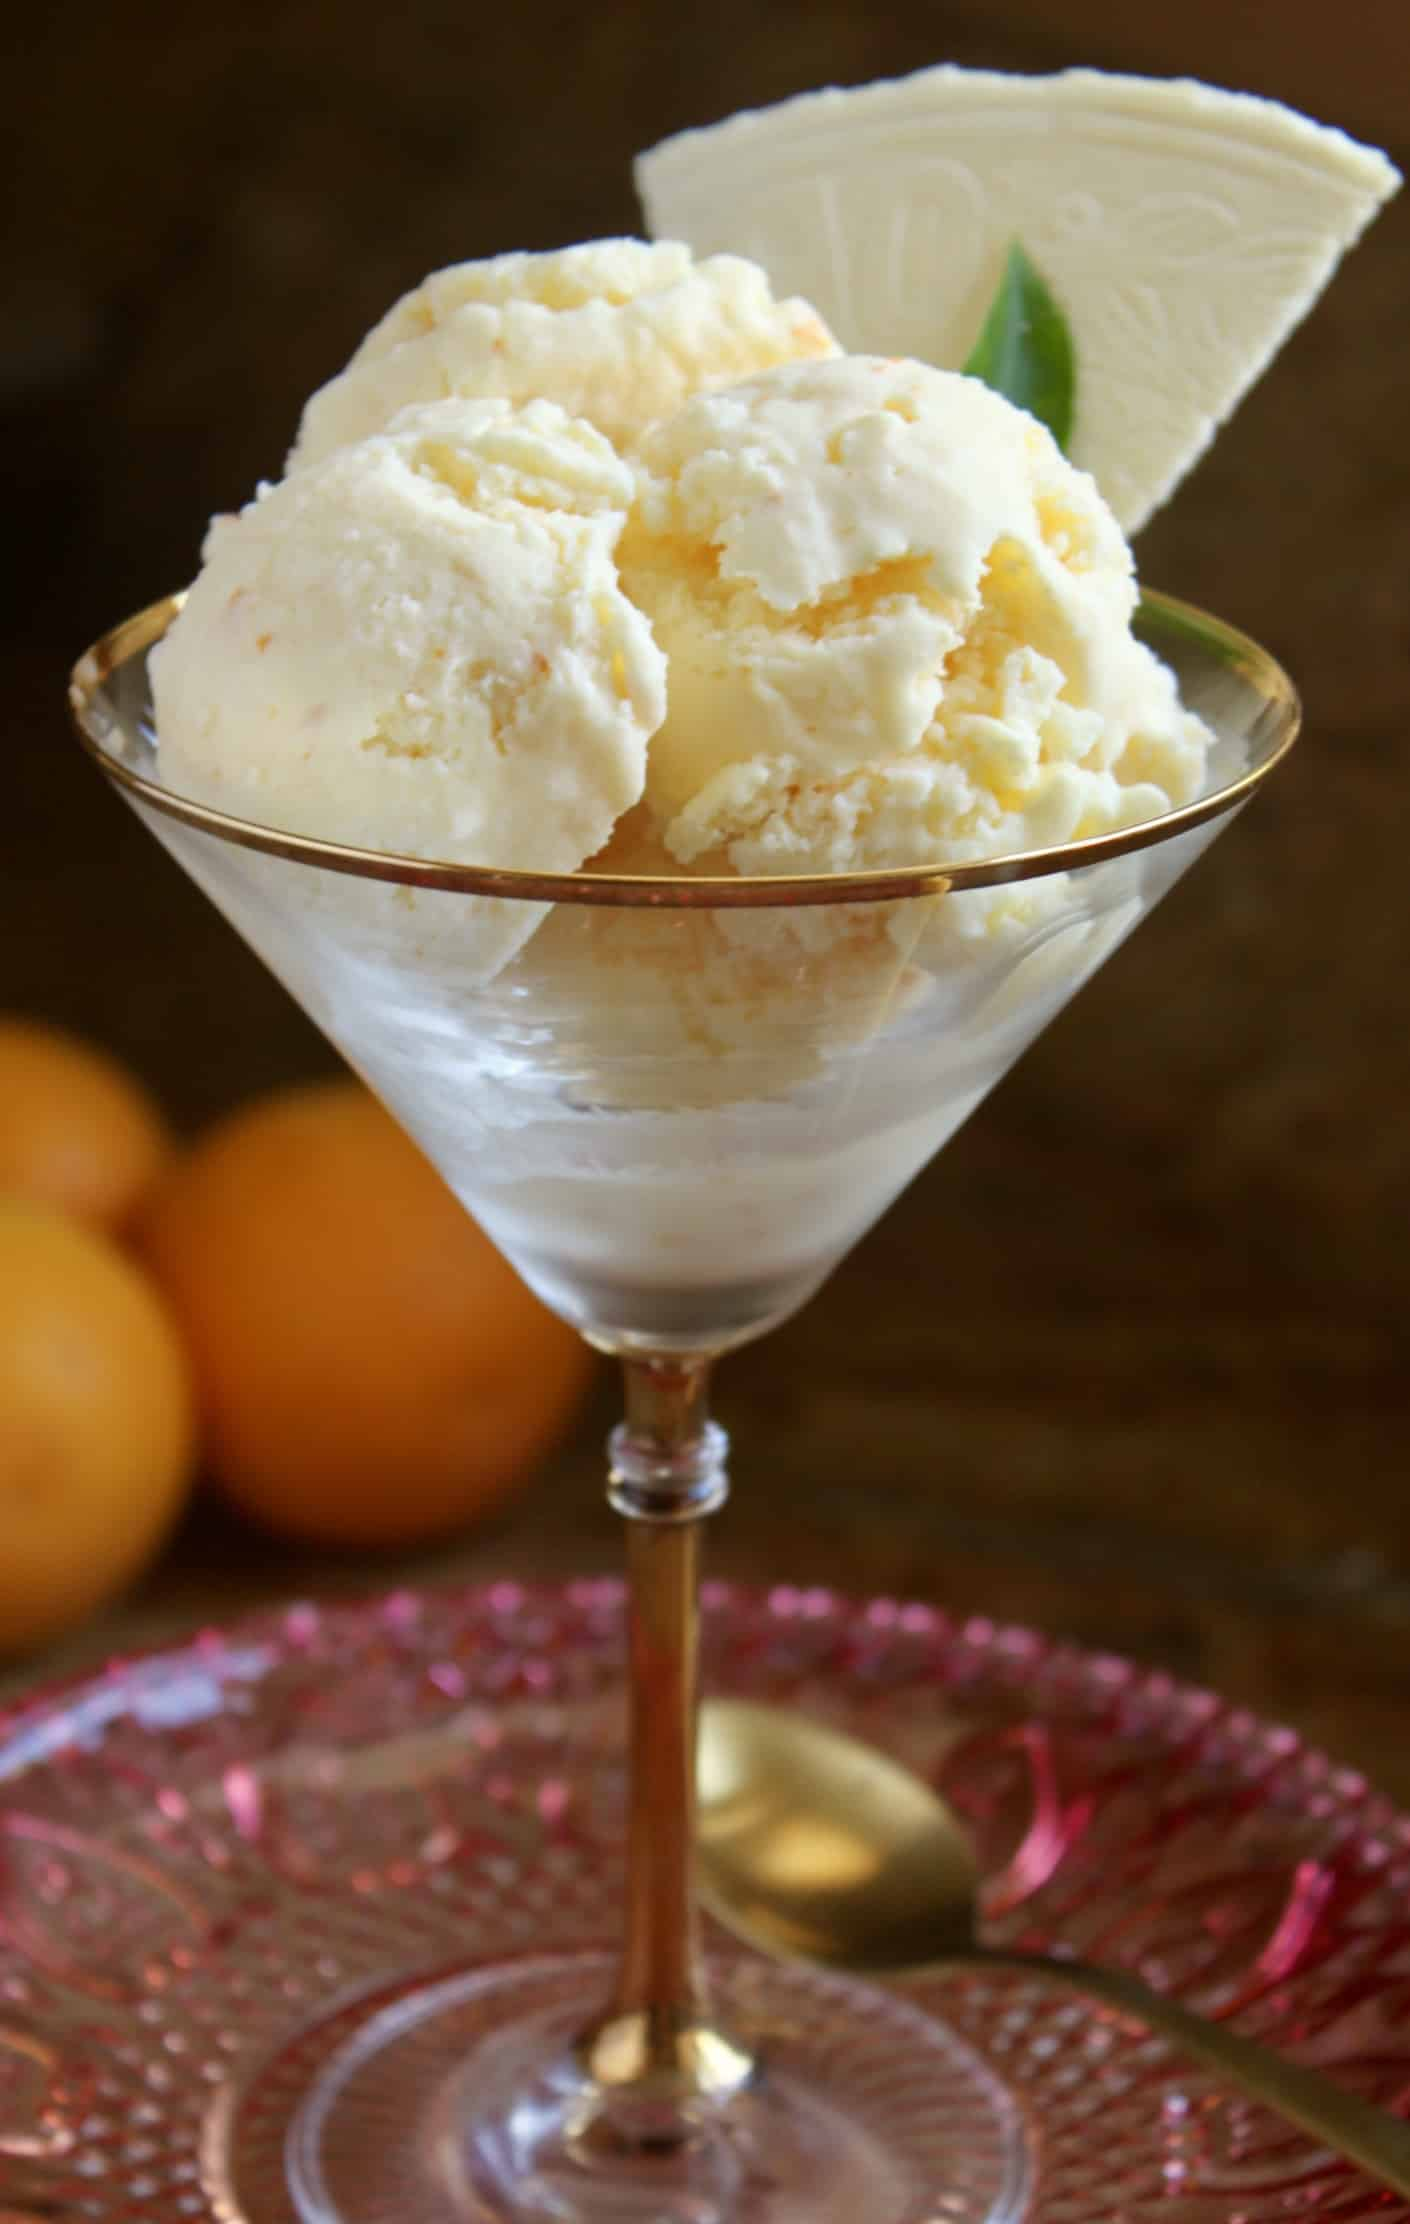 three scoops of orange ice cream and a wafer in a martini glass